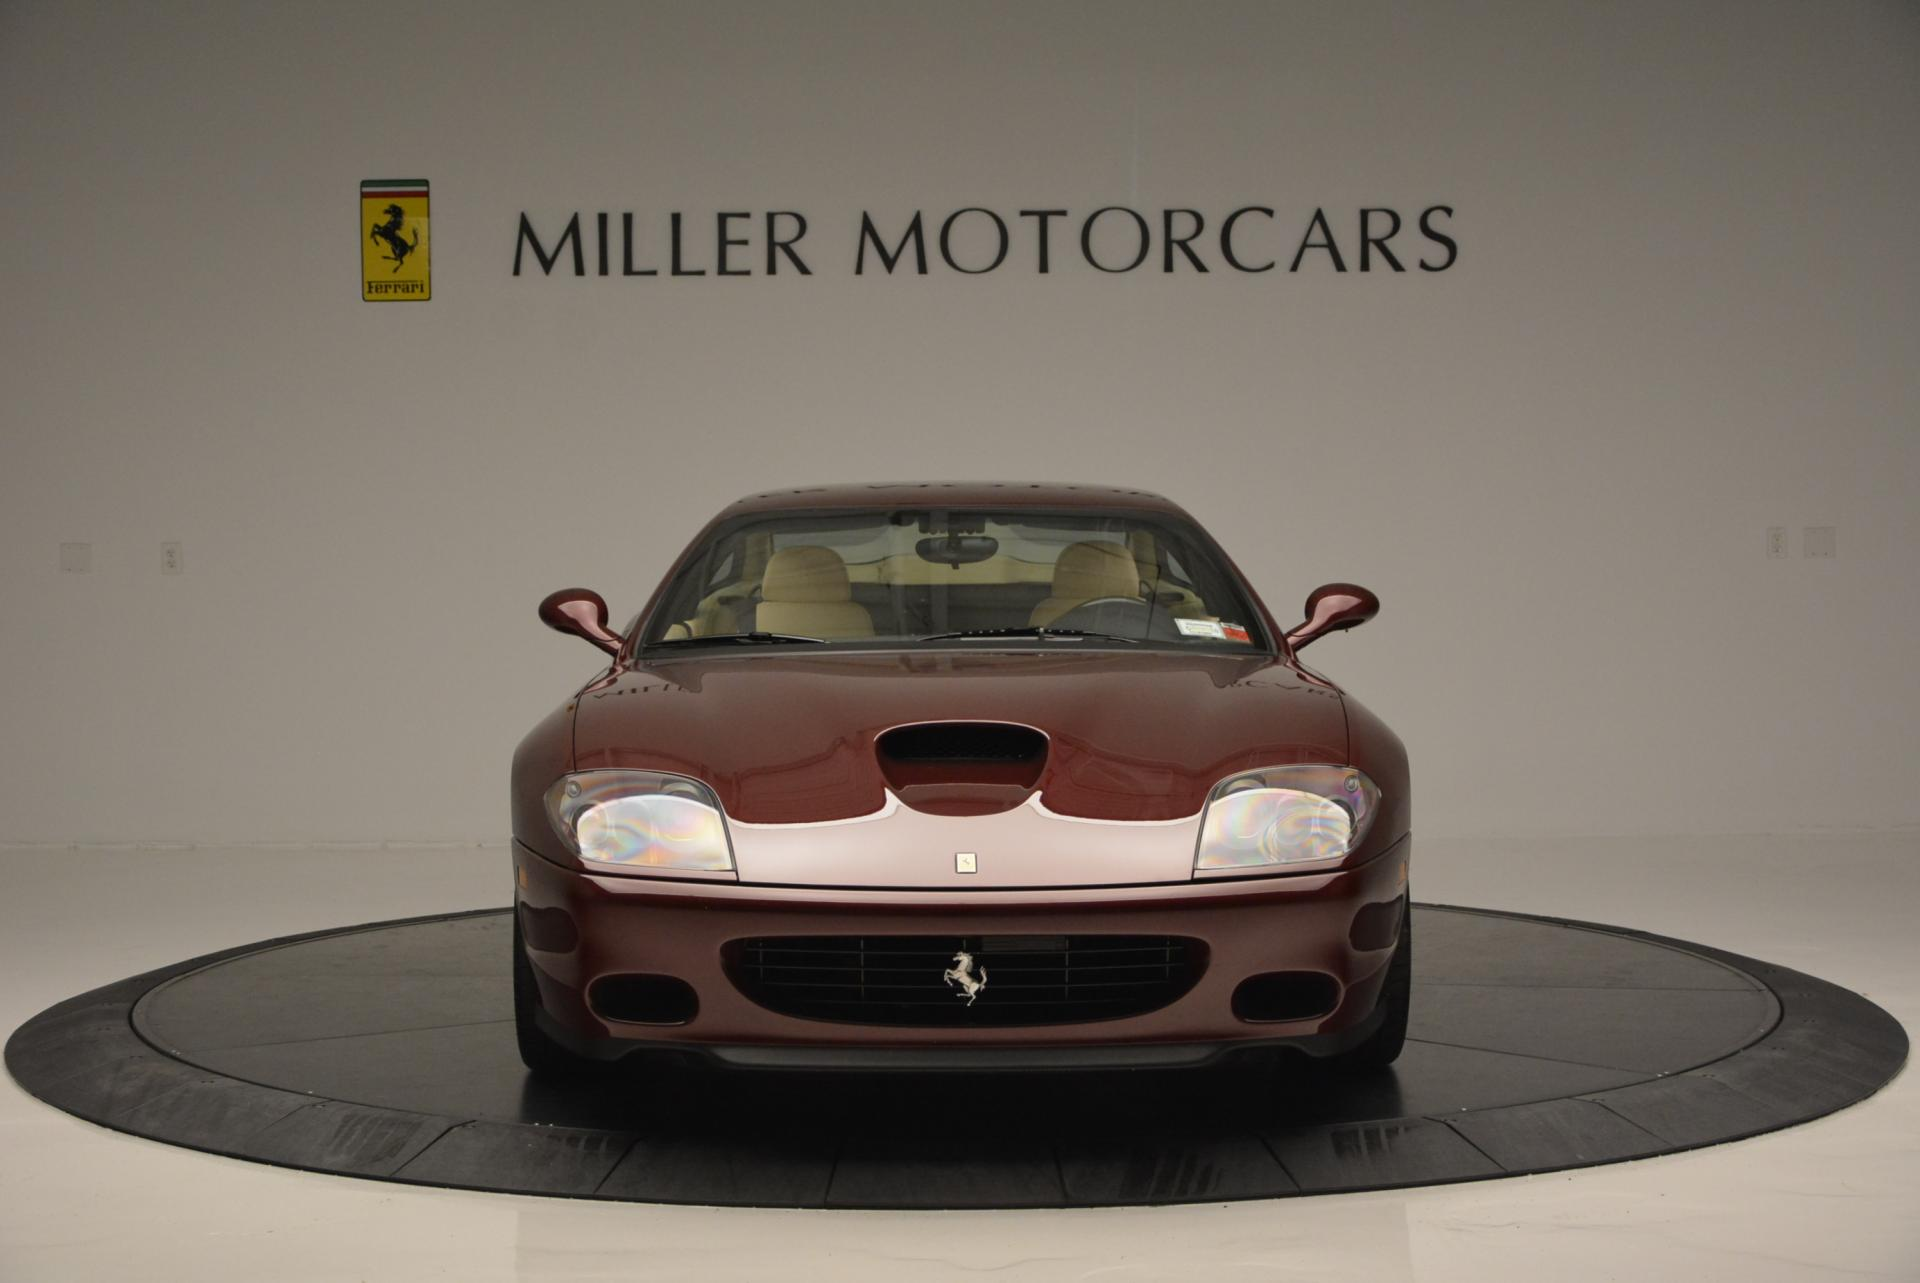 Used 2003 Ferrari 575M Maranello 6-Speed Manual For Sale In Greenwich, CT 143_p12